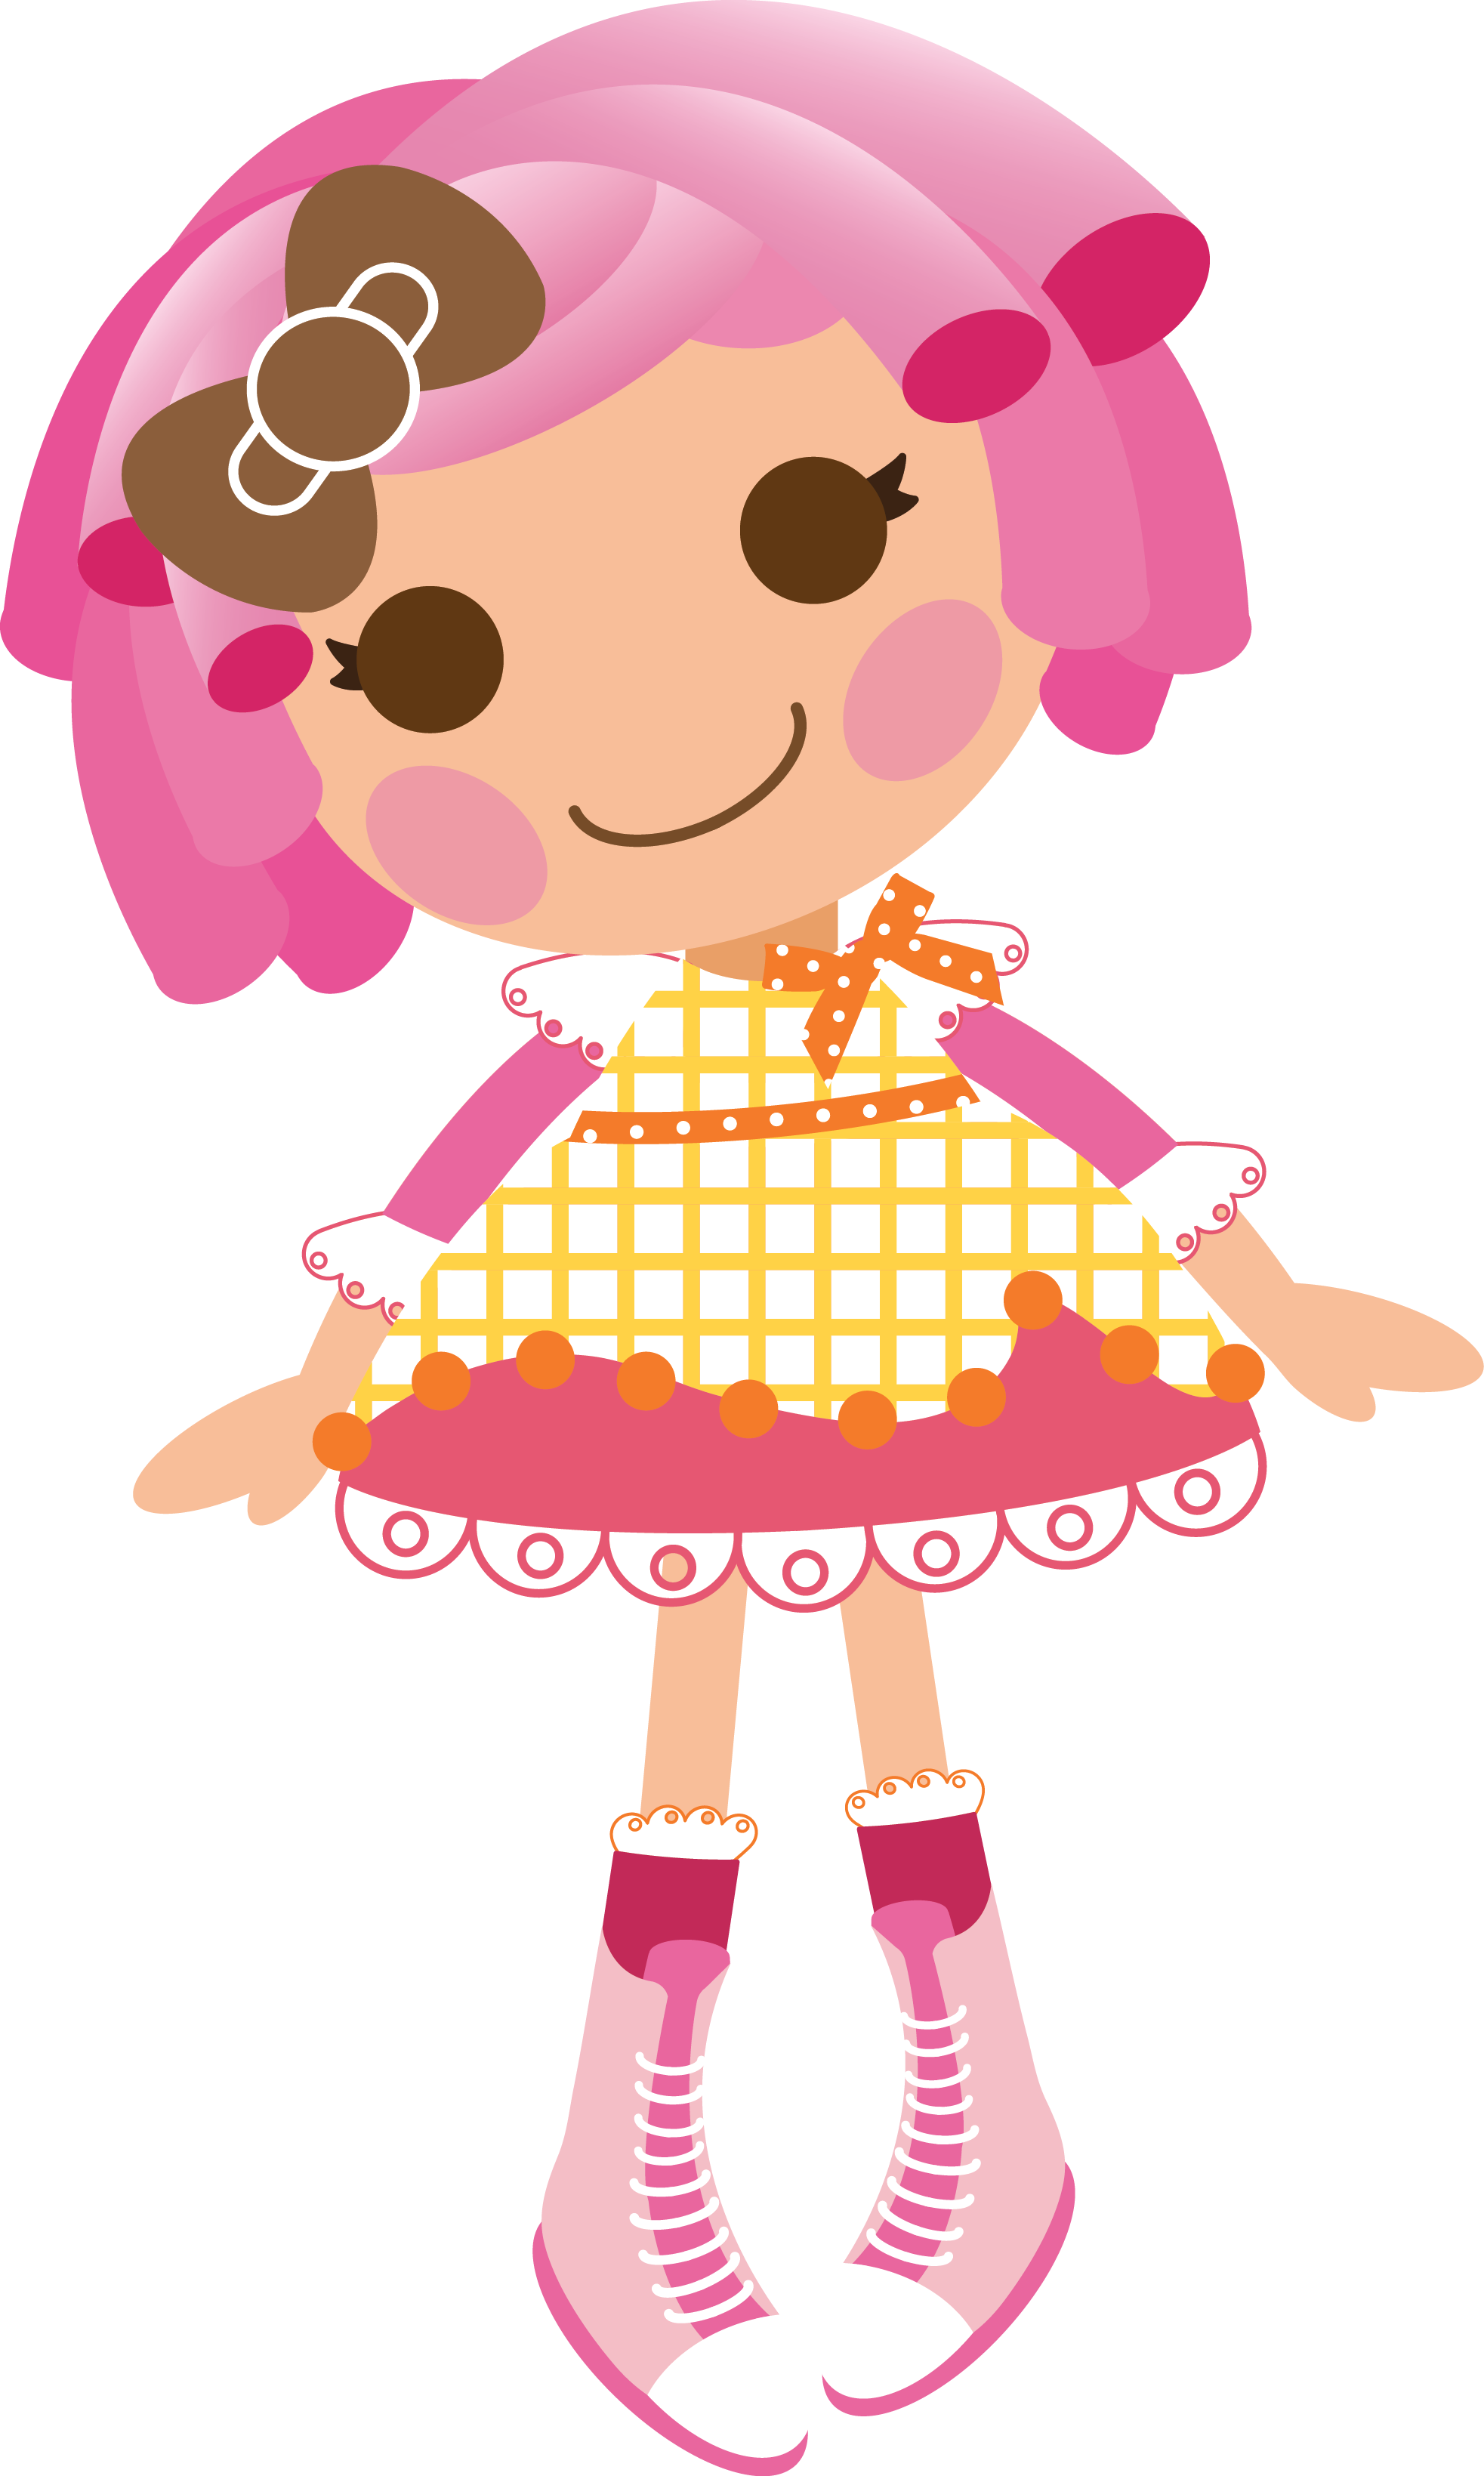 Lalaloopsy printable | LALALOOPSY PARTY | Pinterest | Lalaloopsy ...